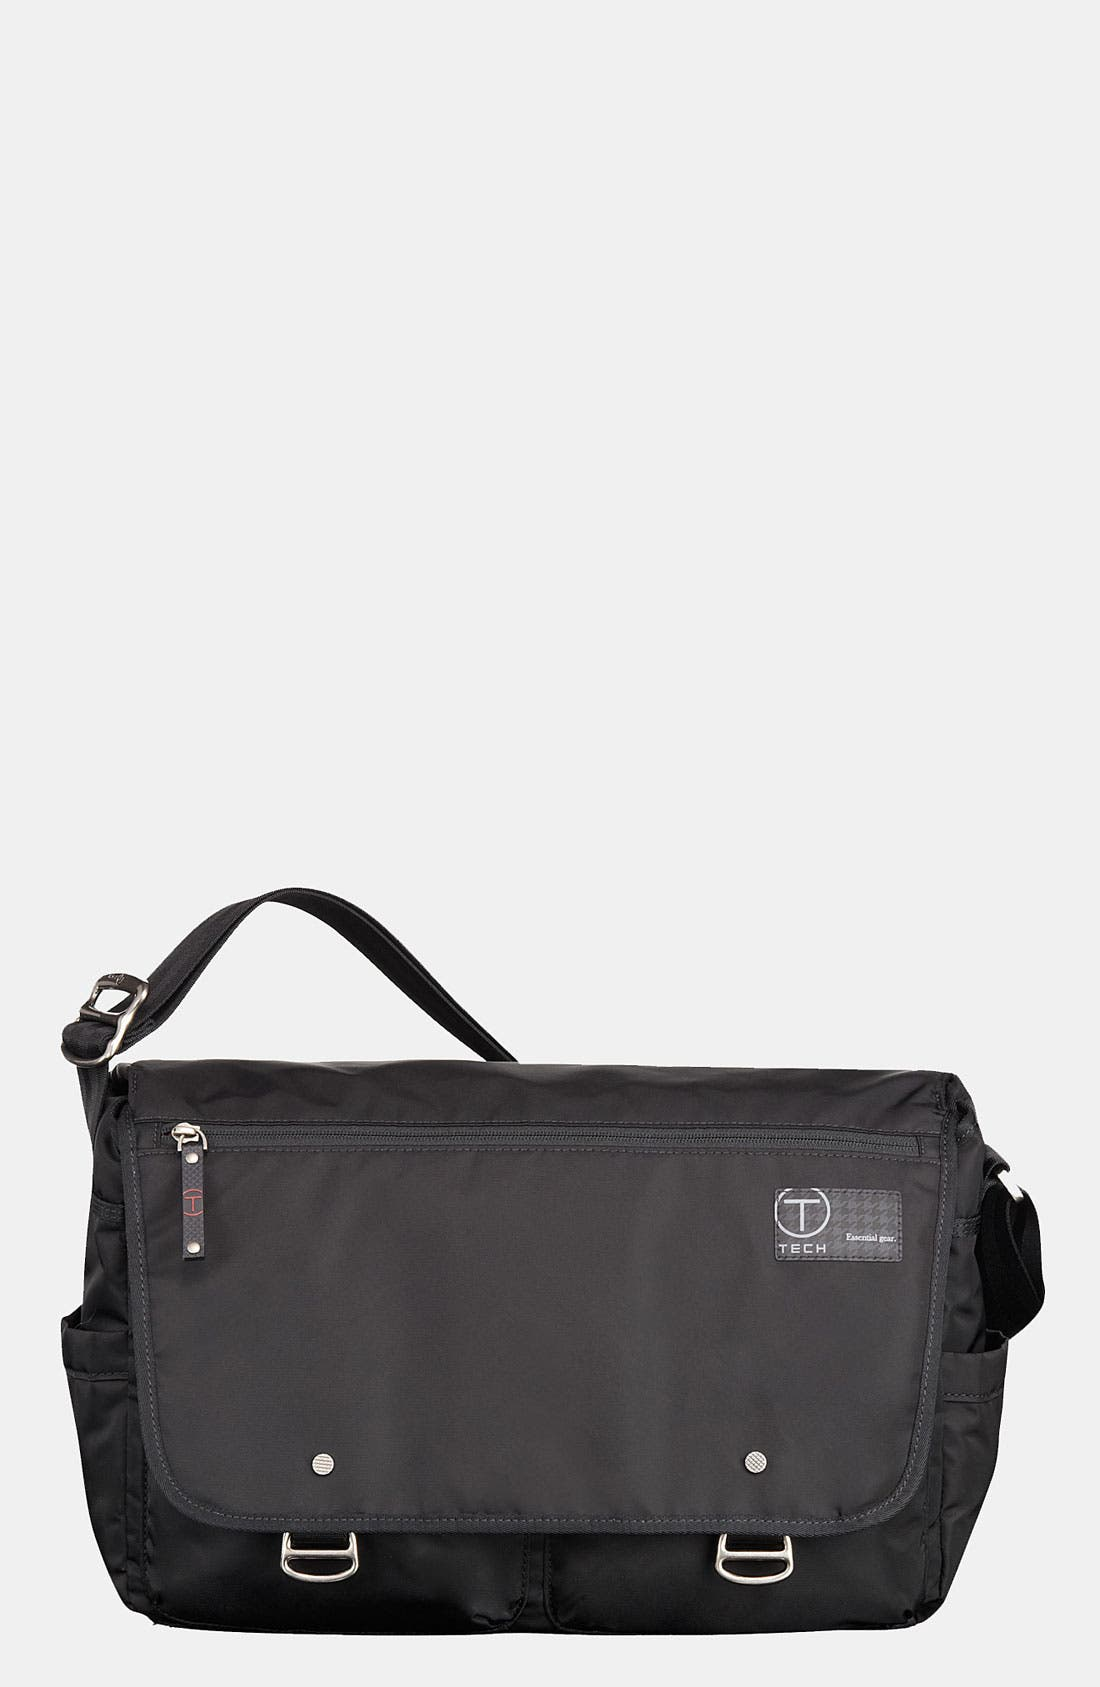 Alternate Image 1 Selected - Tumi 'T-Tech Icon - Hans' Laptop Messenger Bag